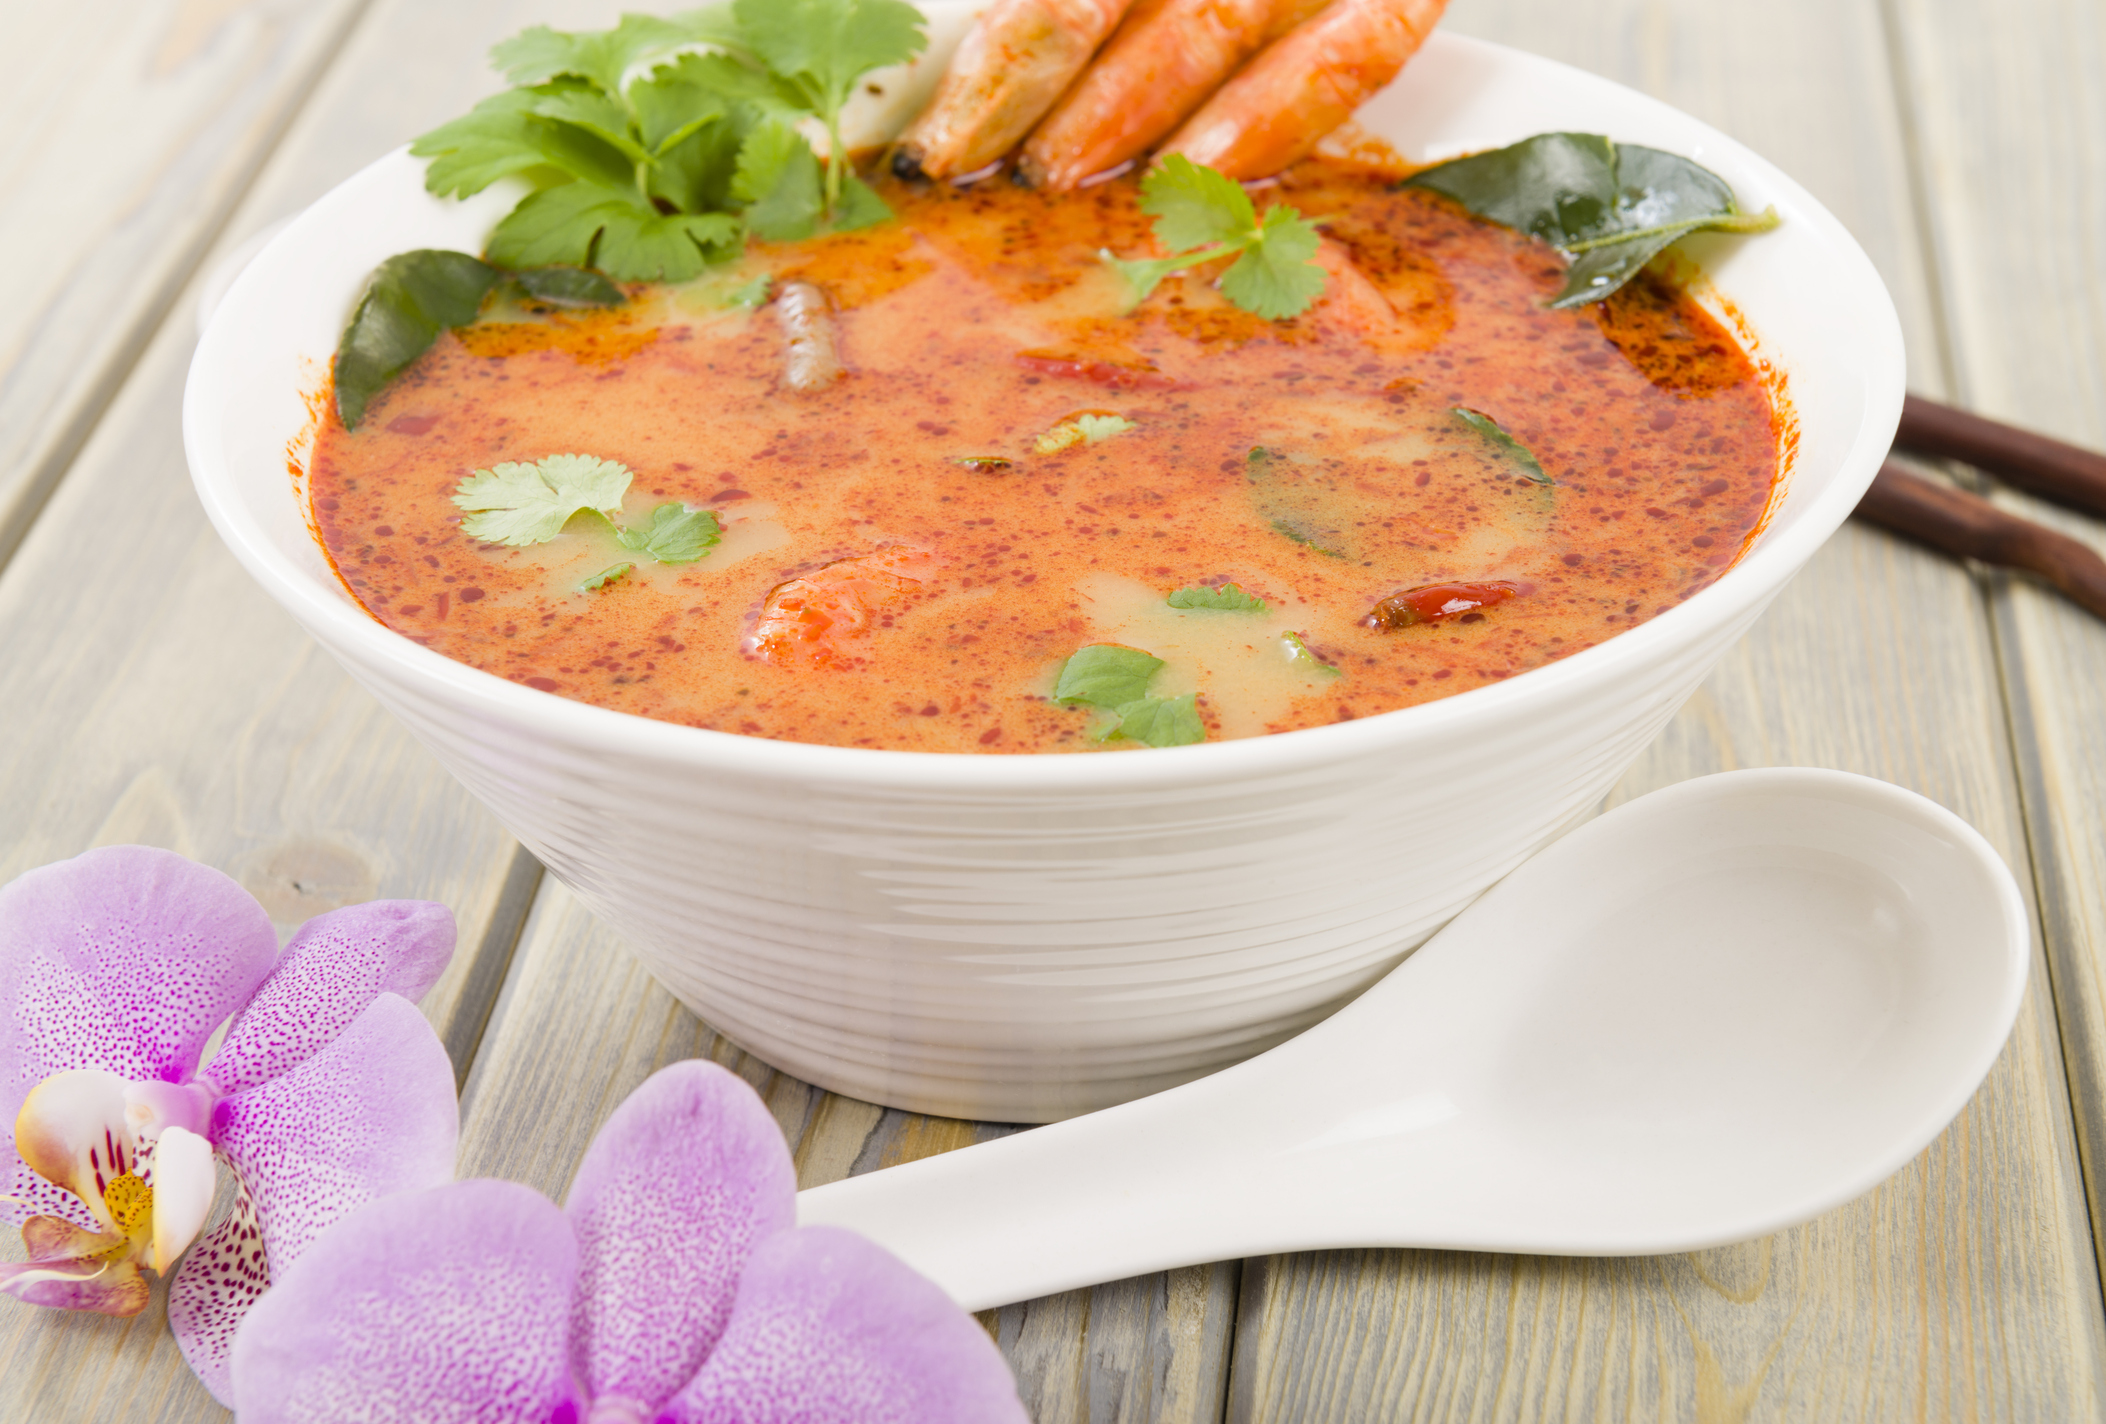 Creamy Thai soup with prawns and mushrooms garnished with coriander leaves and served with lime wedges.